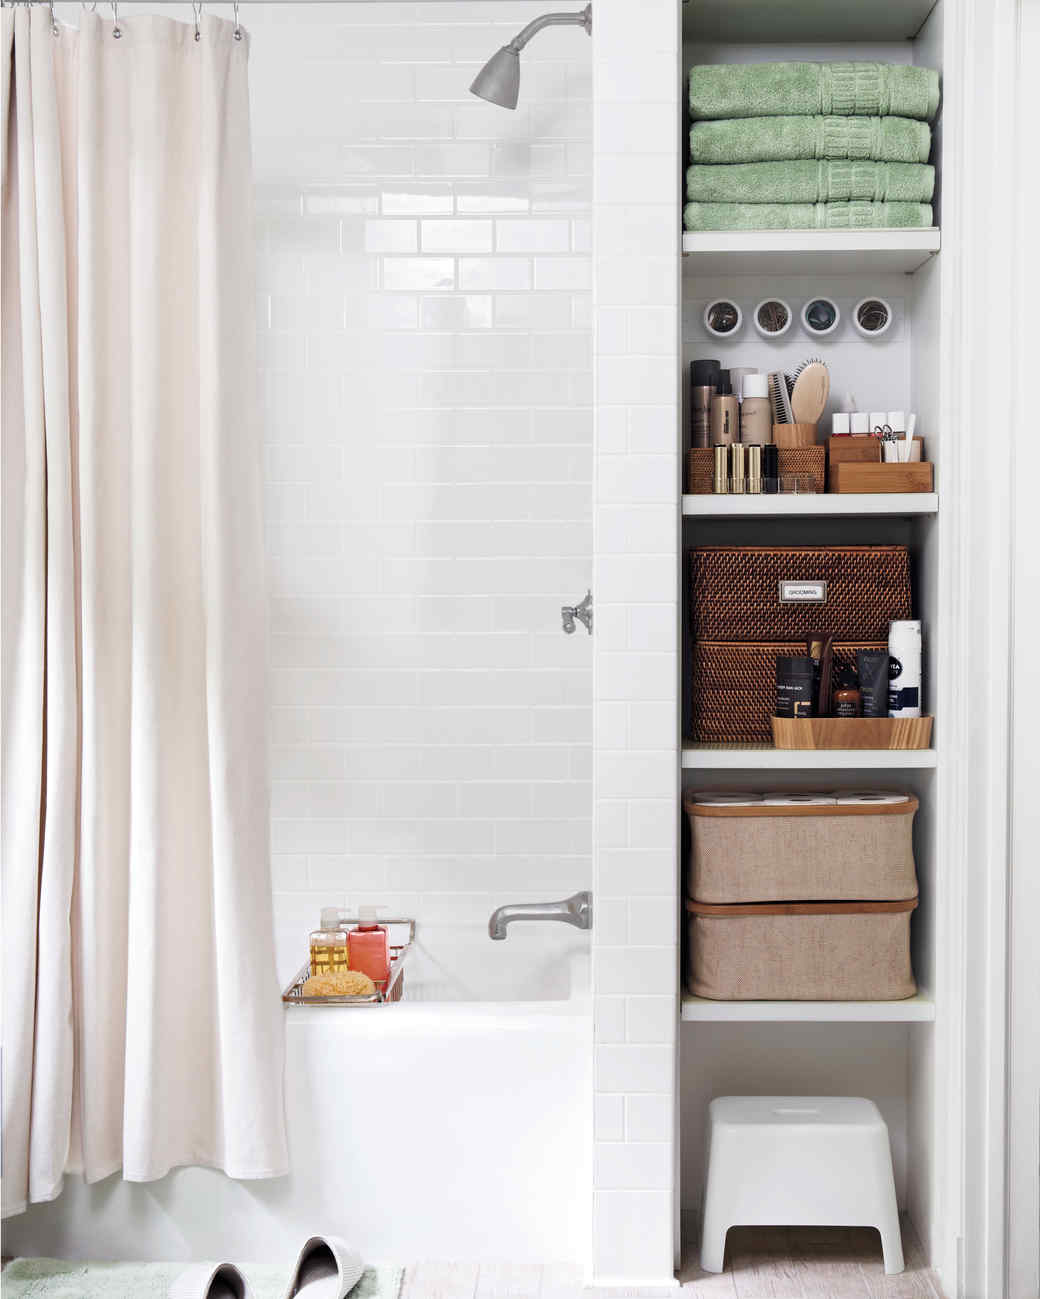 Bathroom Storage smart space-saving bathroom storage ideas | martha stewart